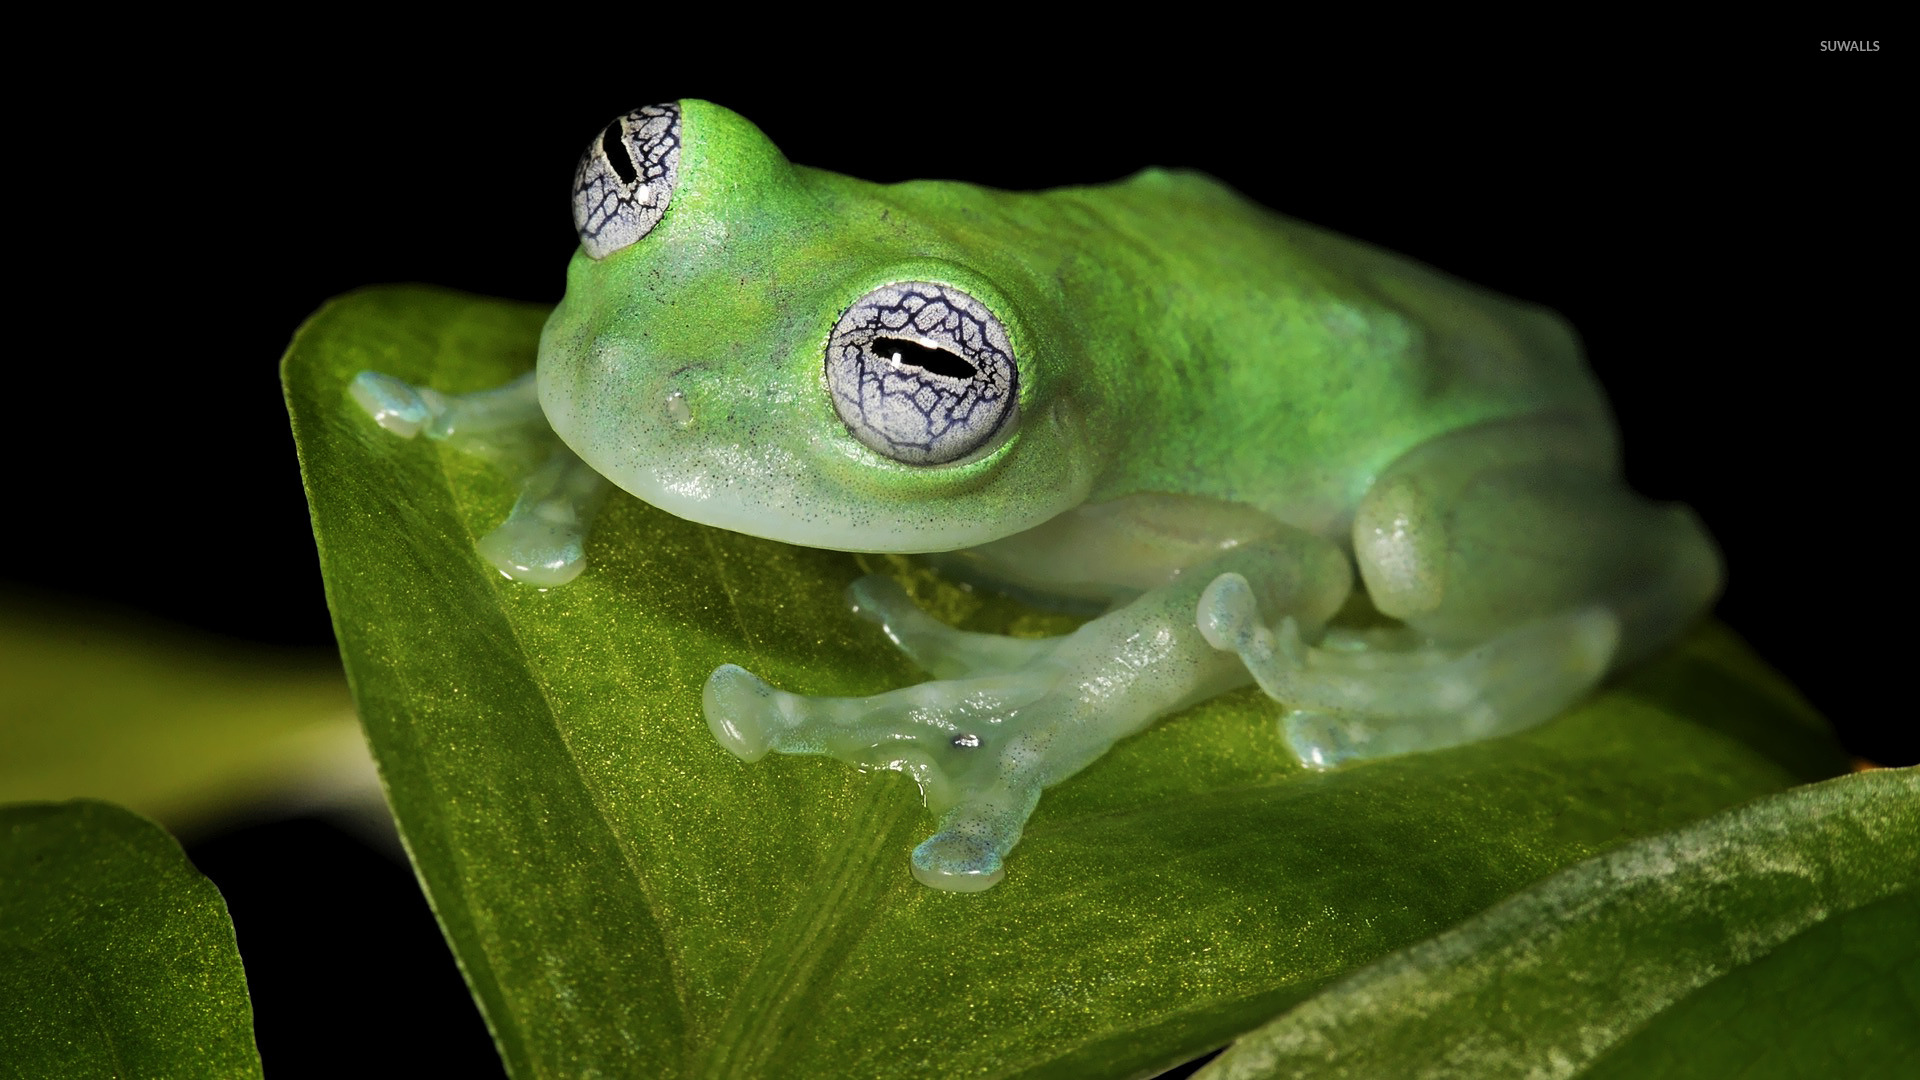 Glass Frog Wallpaper 1920x1080 Jpg